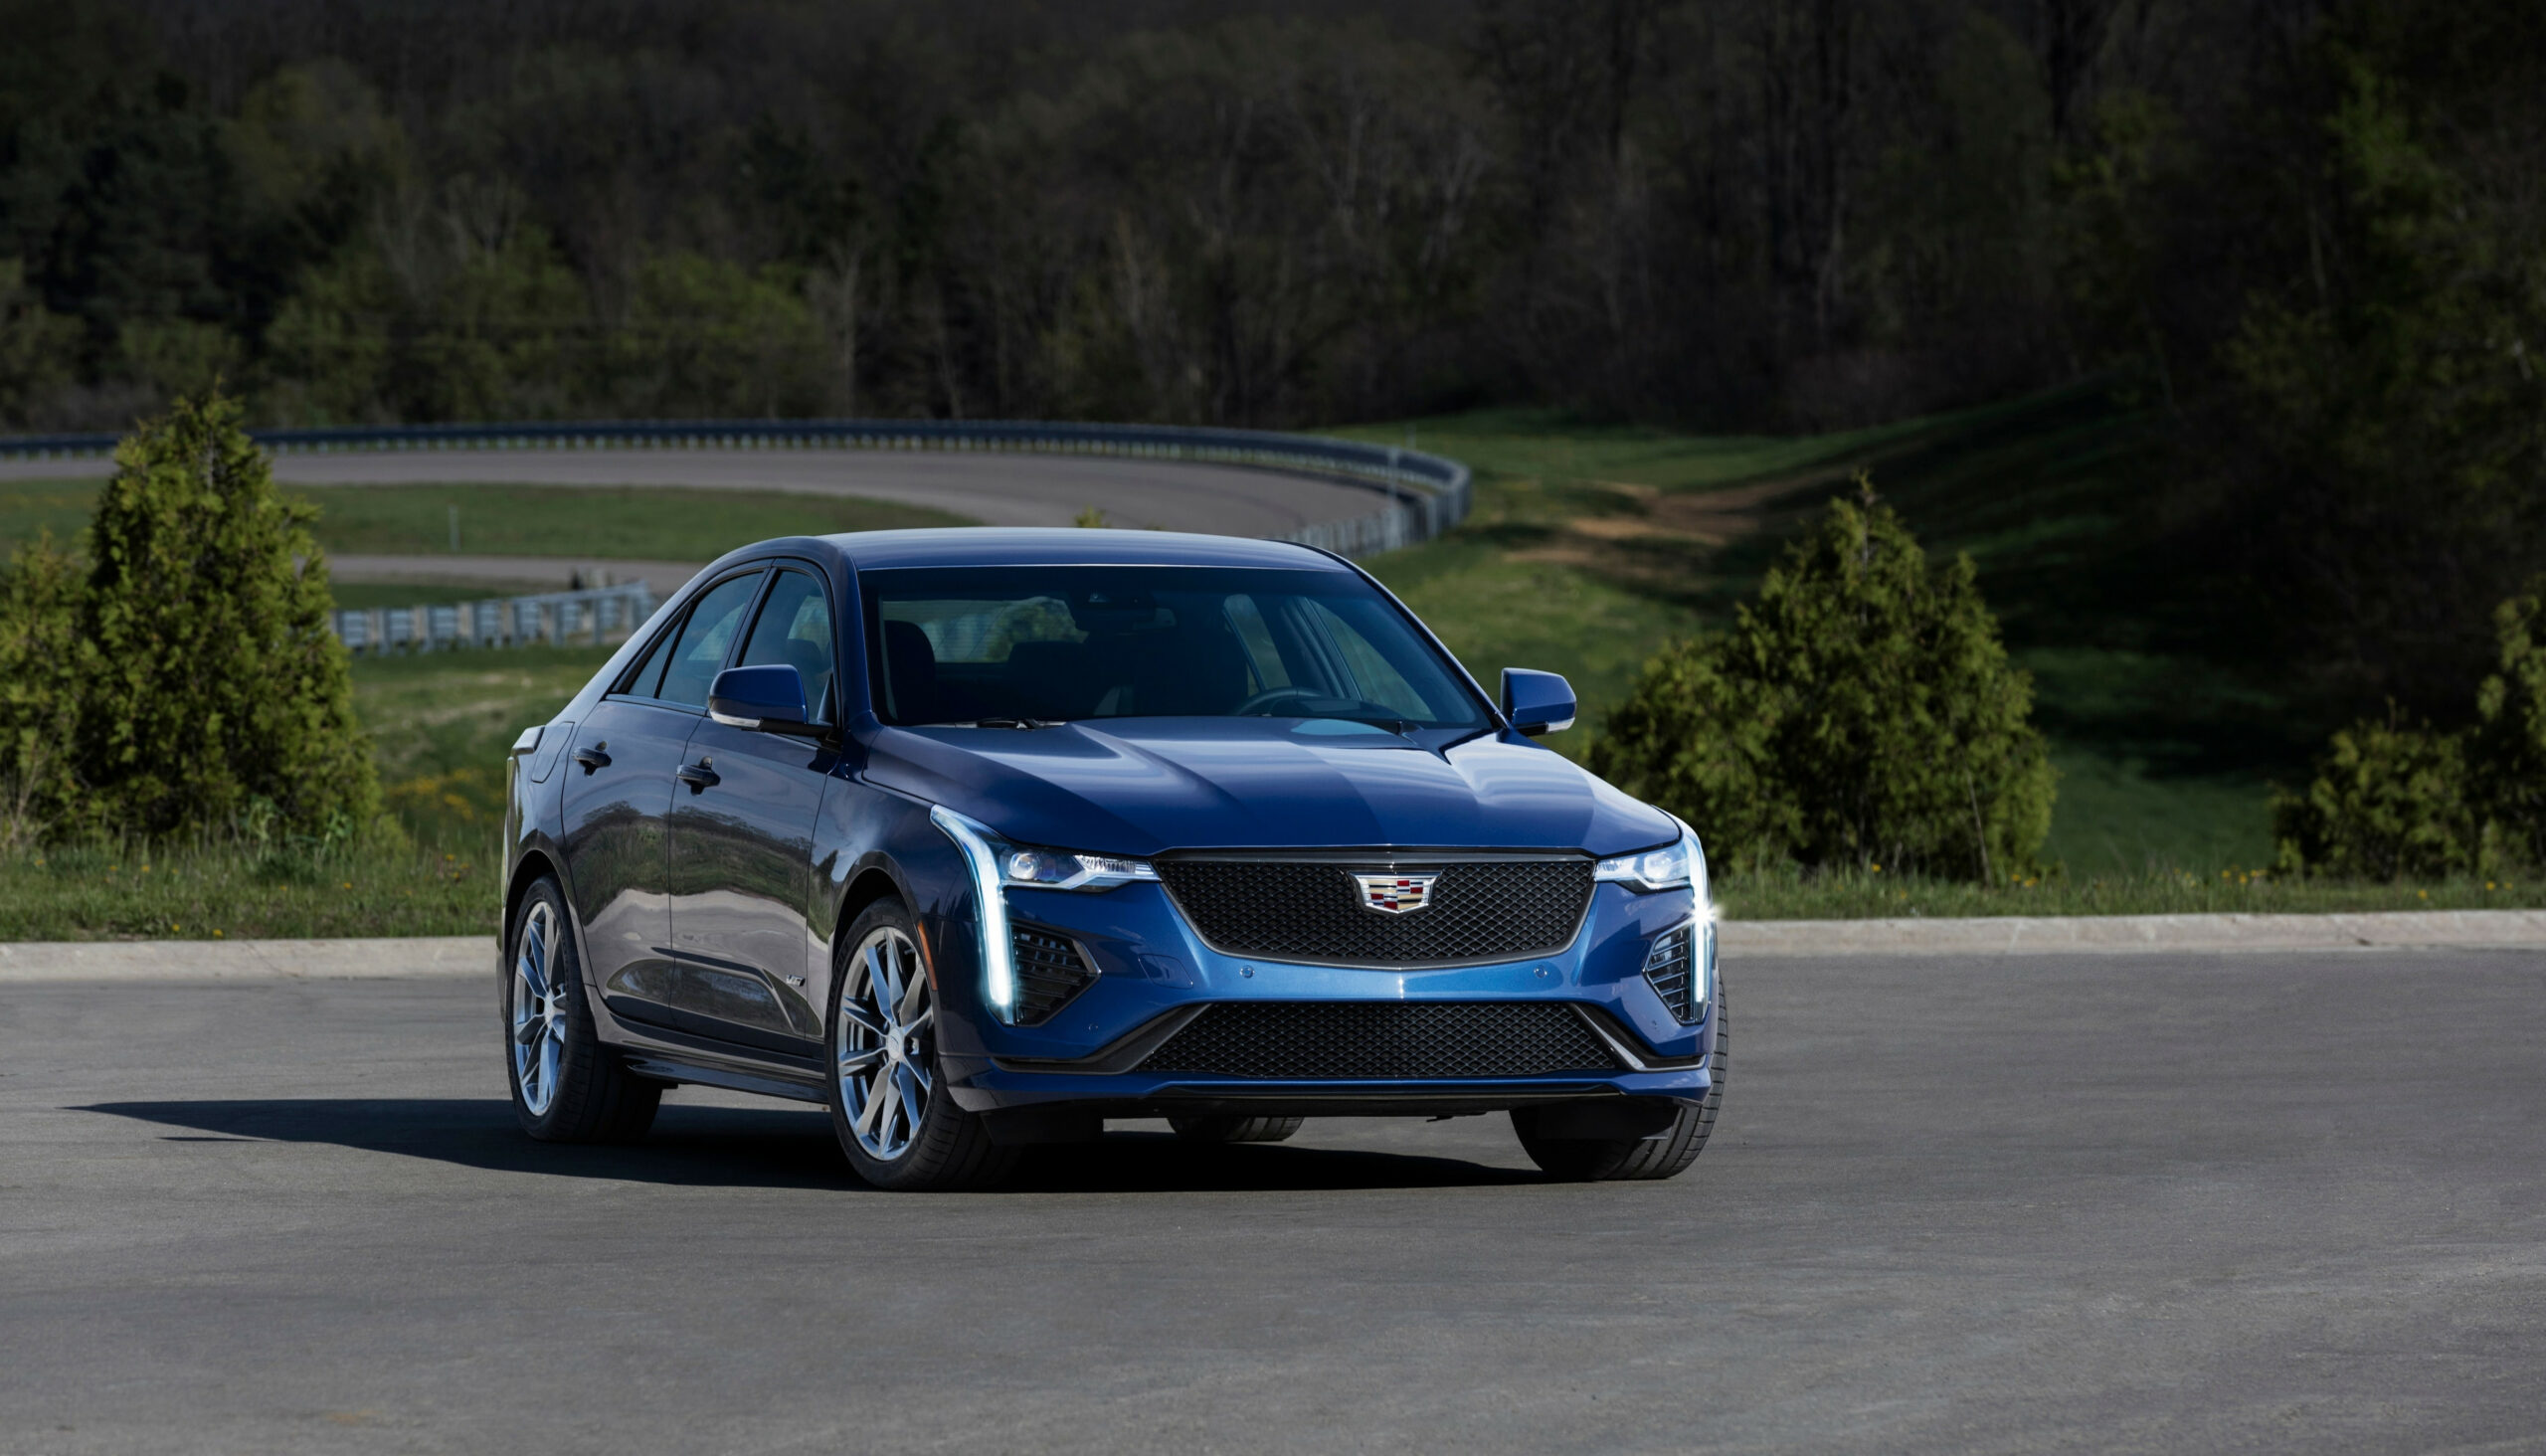 7 Cadillac CT7-V First Look | Kelley Blue Book - 2020 cadillac blue